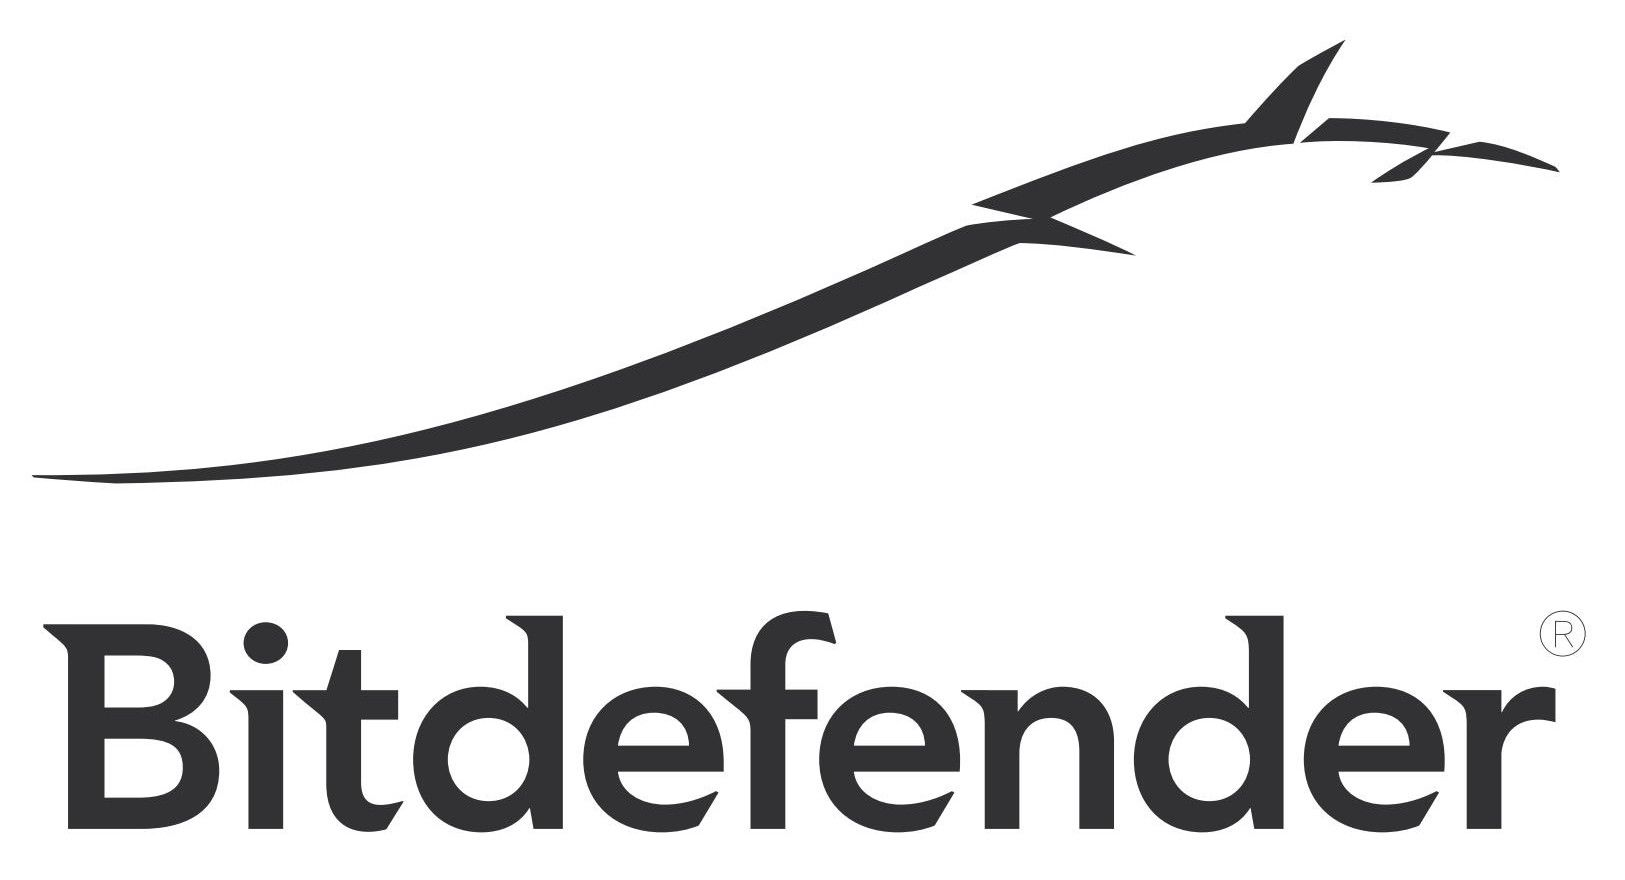 BitDefender Logo [EPS File] Vector EPS Free Download, Logo, Icons, Brand Emblems